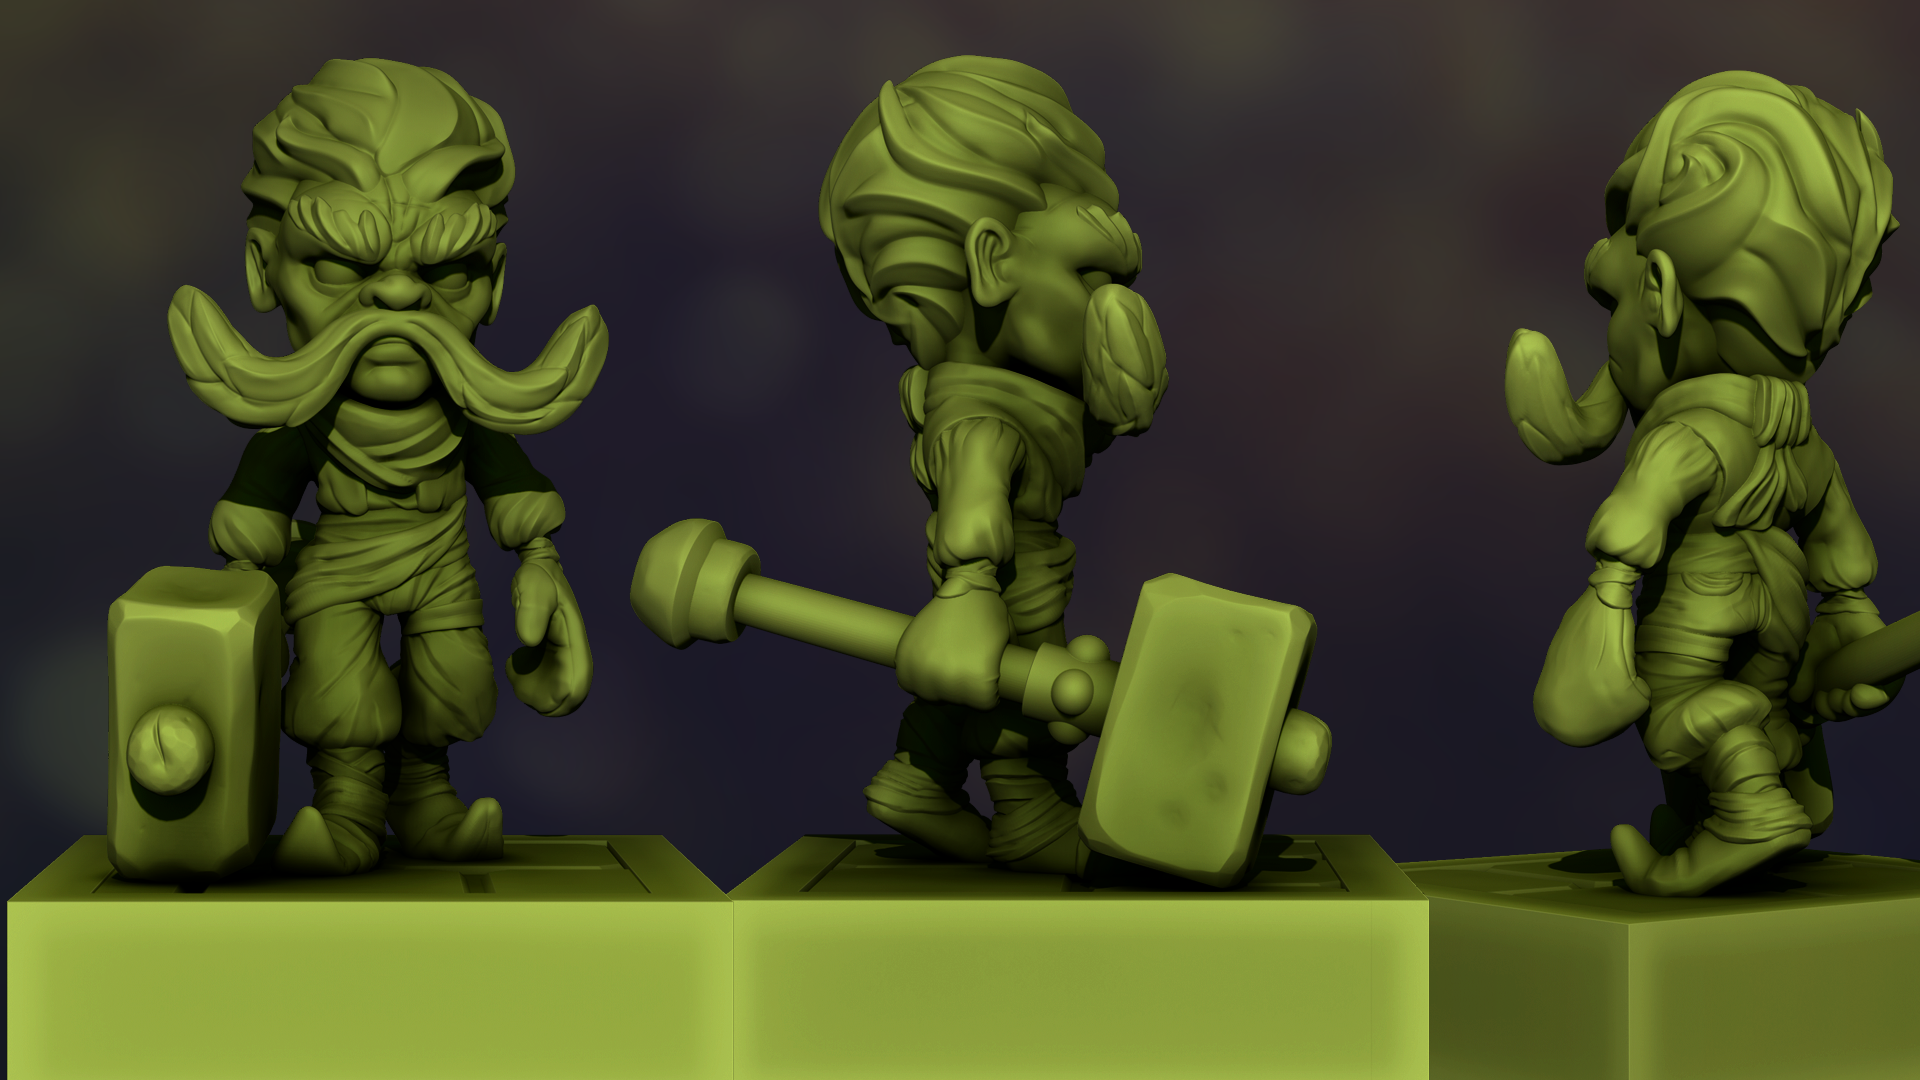 aie_3d_print_challenge_by_andra_arts-d6ww548.png